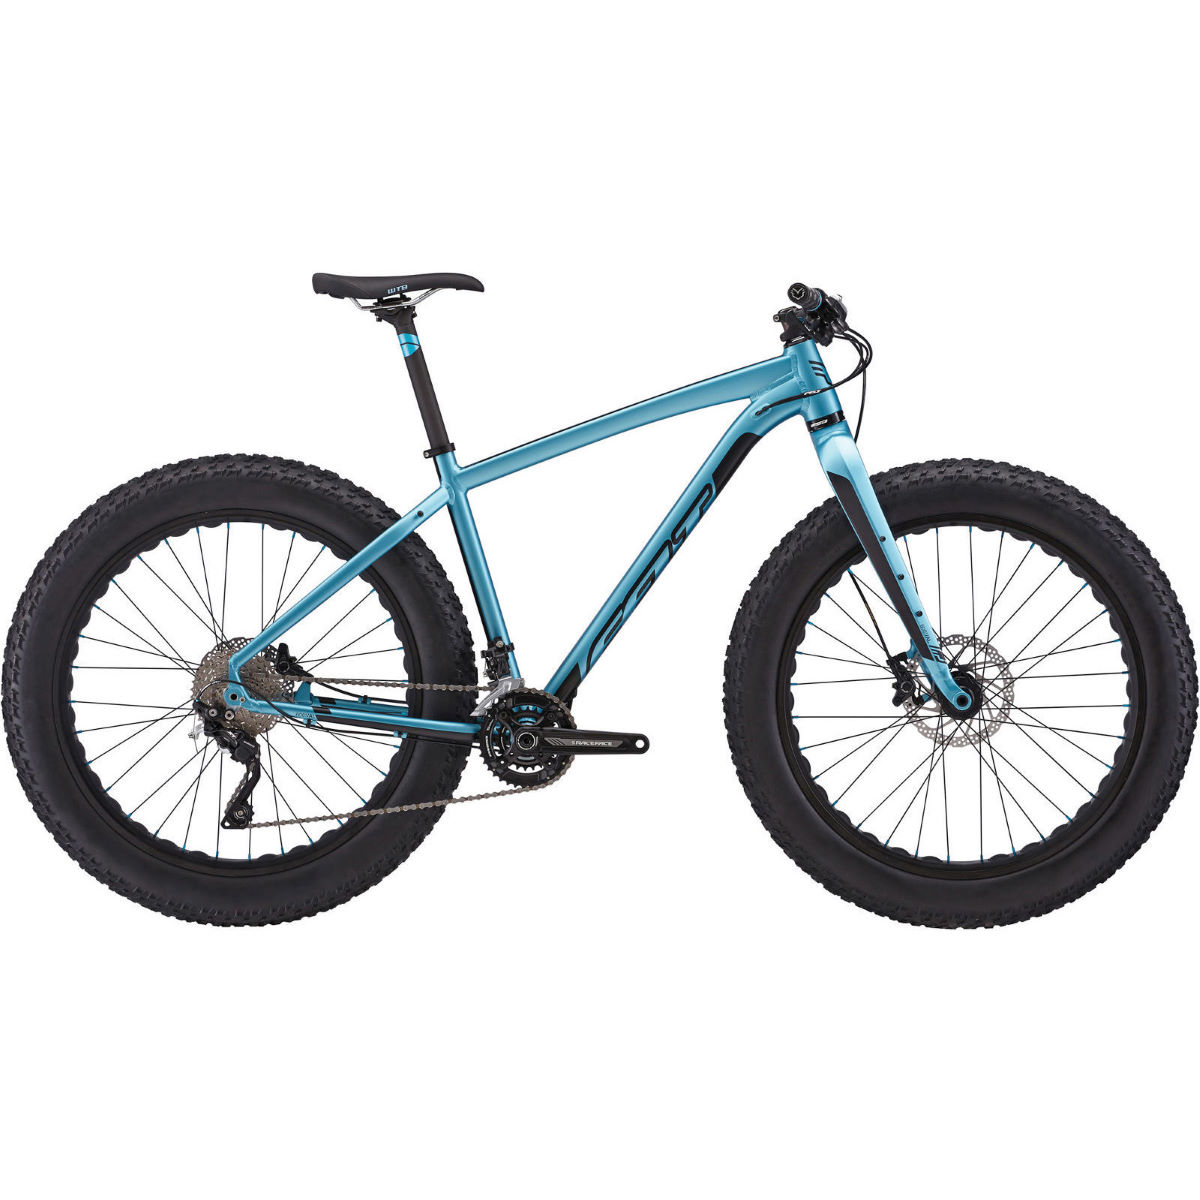 VTT Fat Bike Felt DD 30 (2016) - M Satin Steel Blue VTT semi-rigides